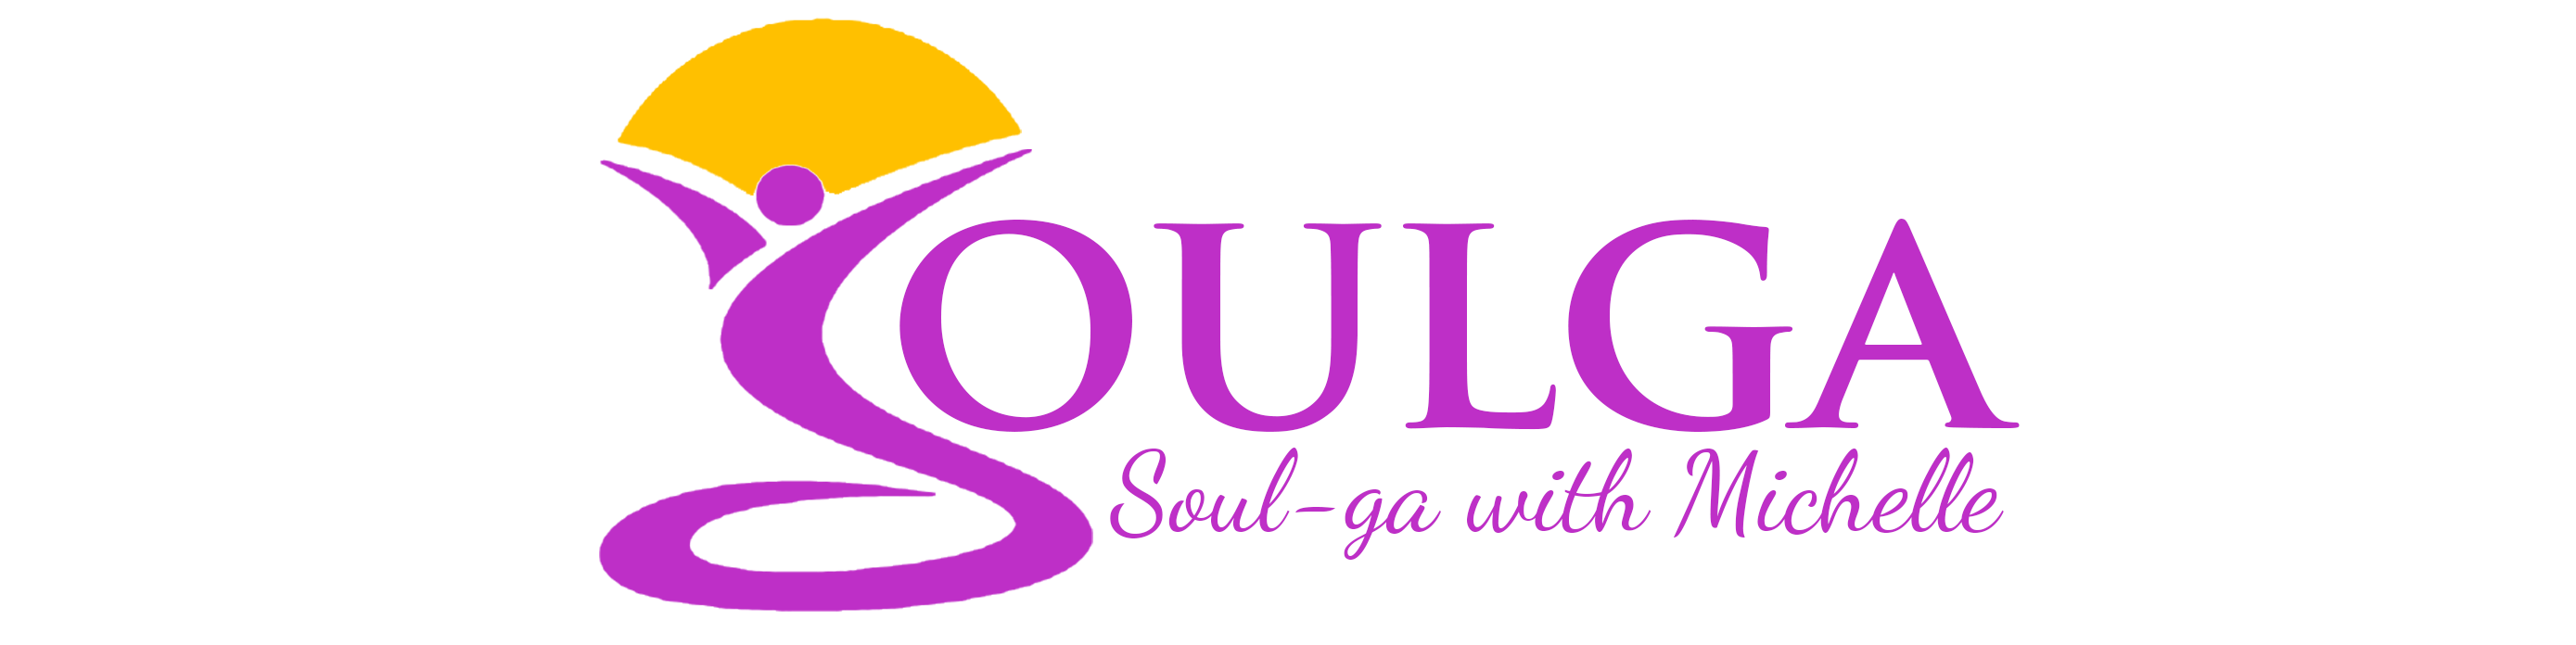 Life Coaching for Women from the Soul